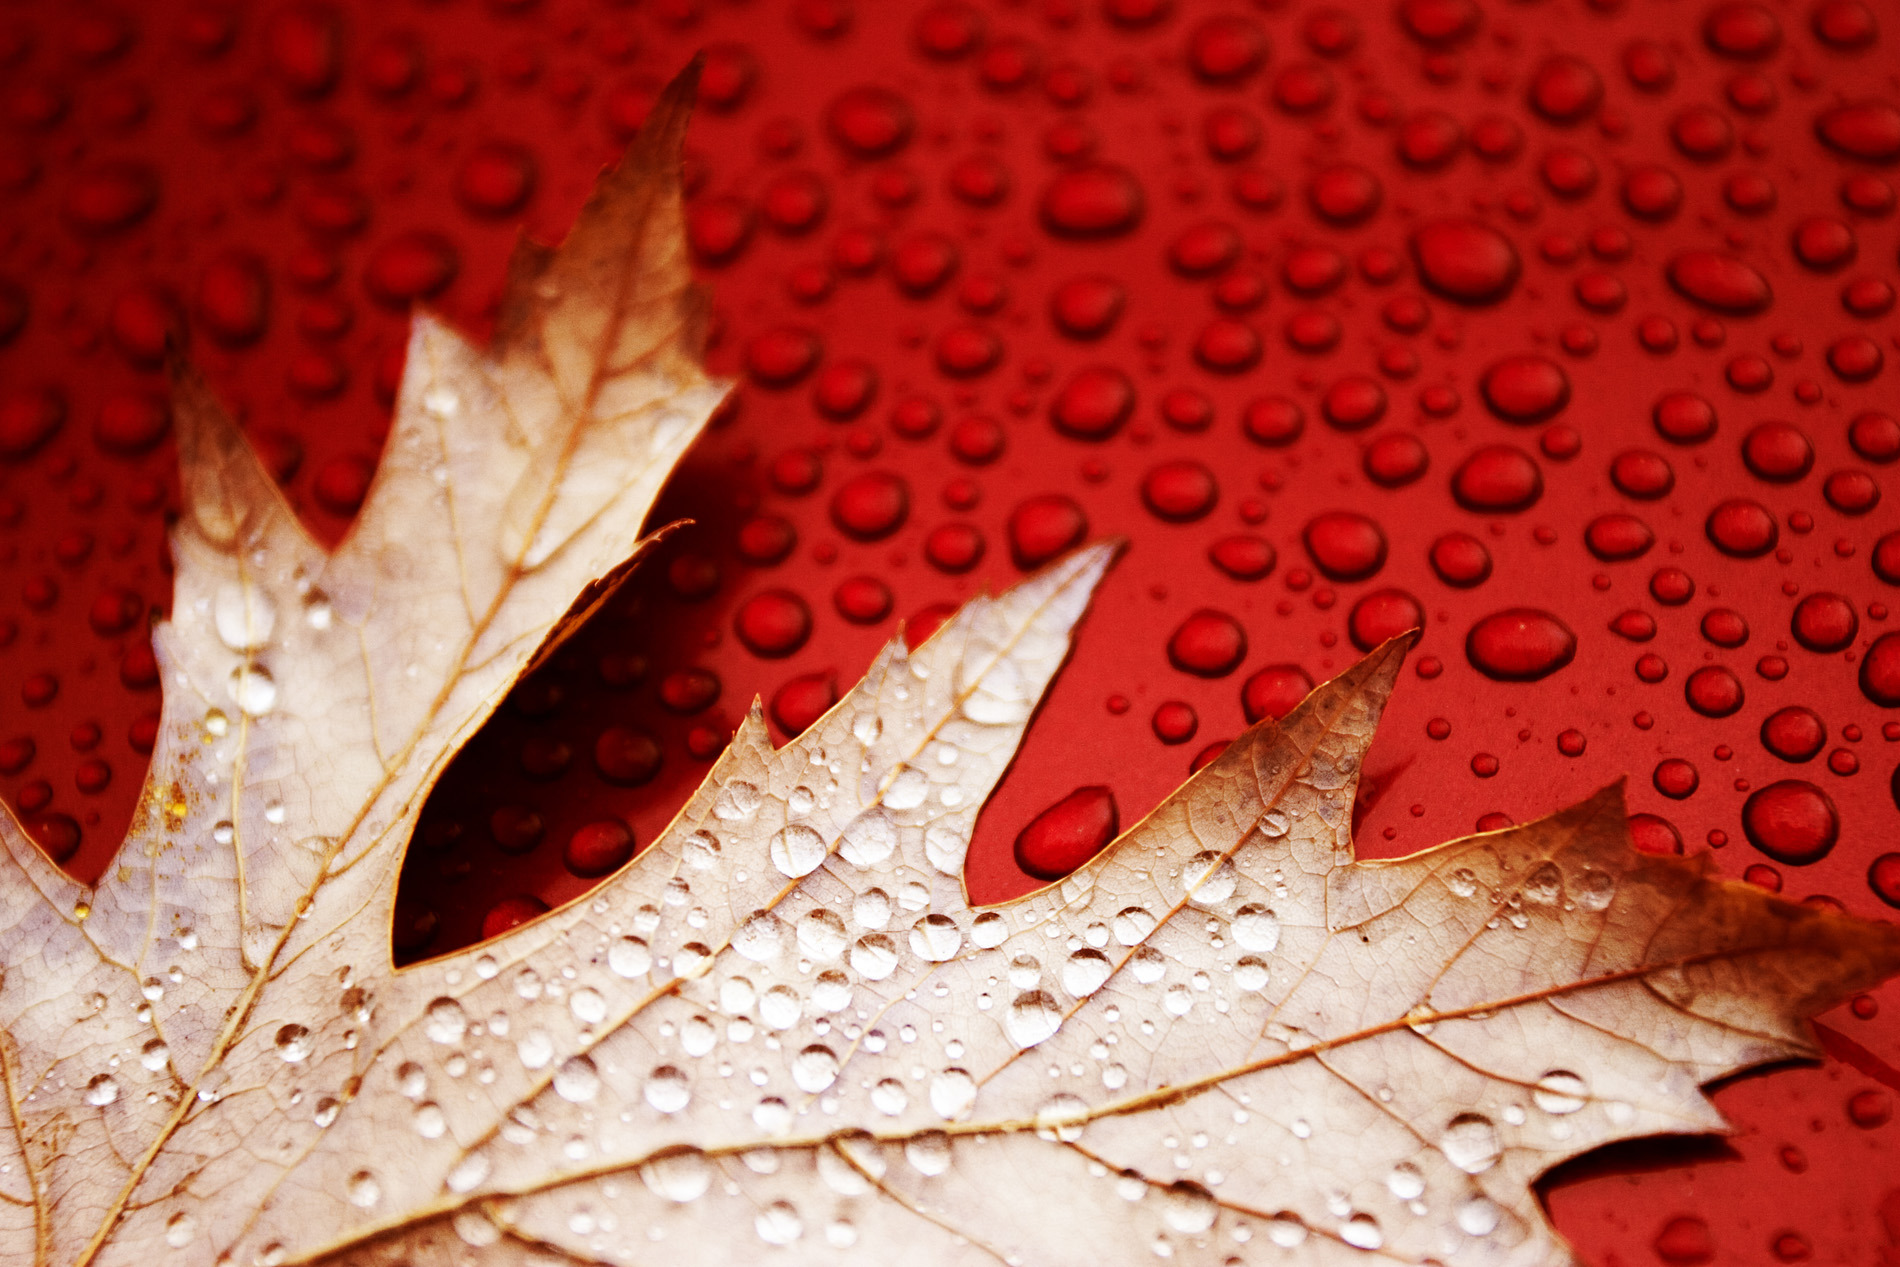 red leaves wet water HD Wallpaper